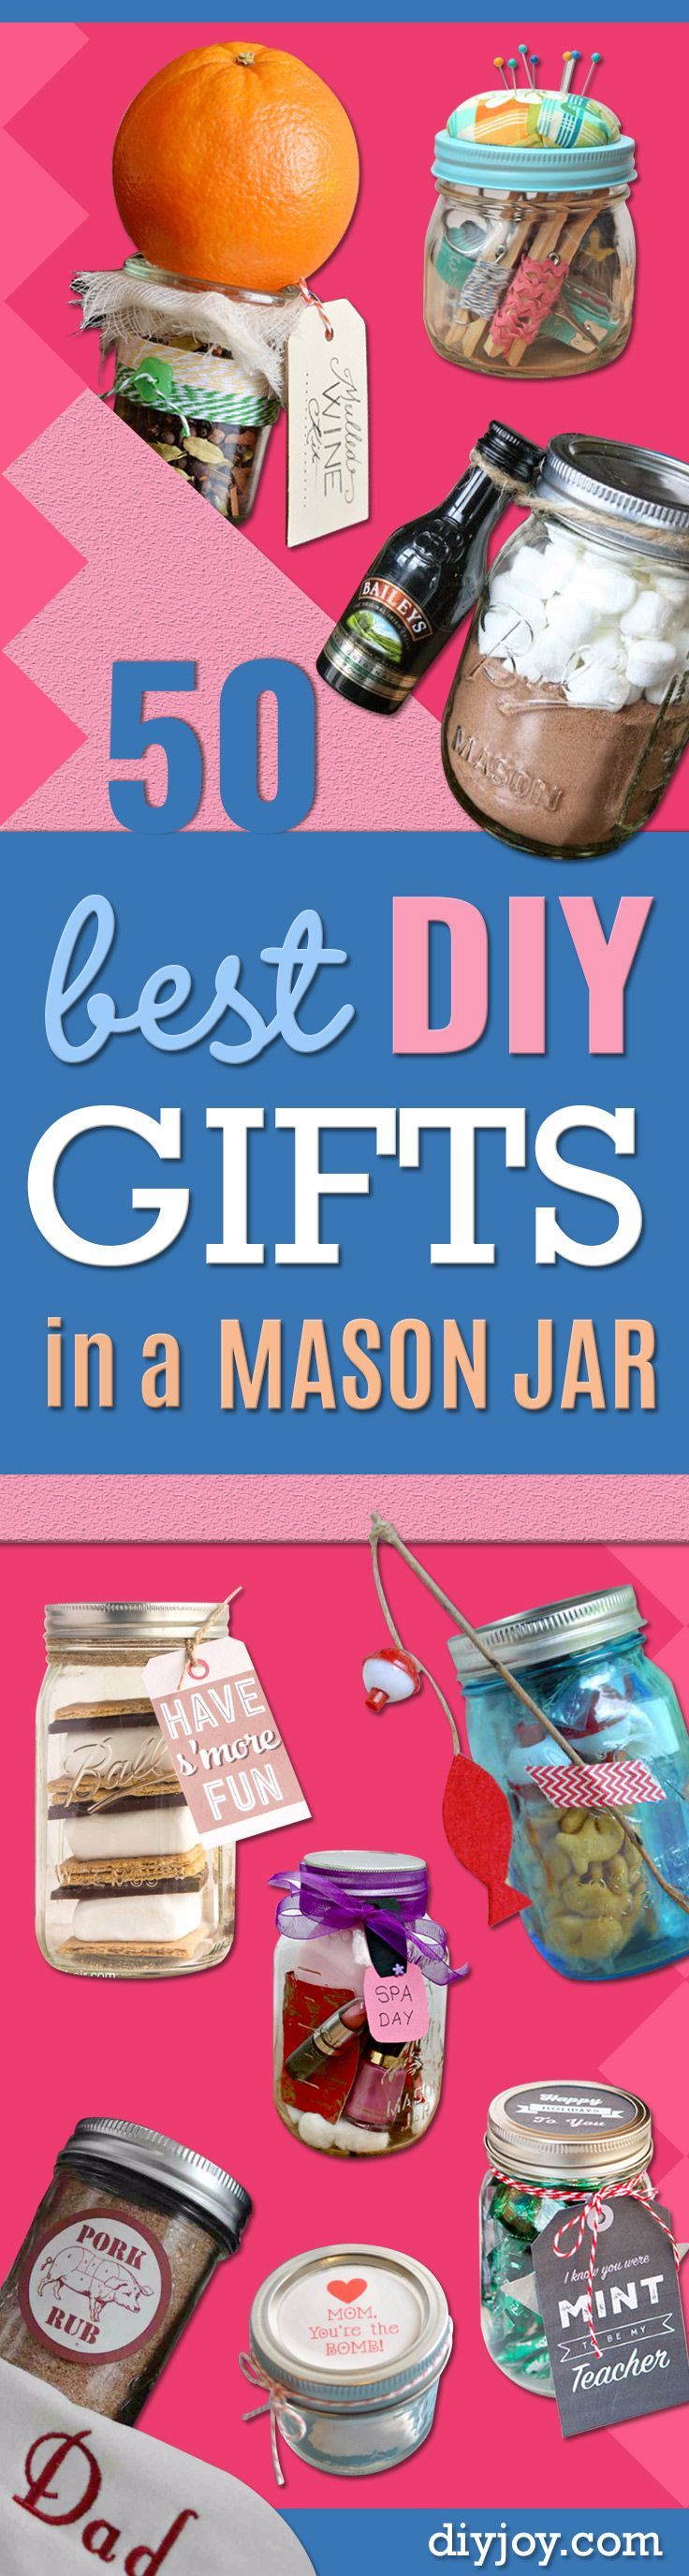 Best DIY Gifts in Mason Jars - Cute Mason Jar Crafts and Recipe Ideas that Make Great DIY Christmas Presents for Friends and Family - Gifts for Her, Him, Mom and Dad - Gifts in A Jar That Are Easy, Quick and Cheap http://diyjoy.com/best-diy-mason-jar-gift